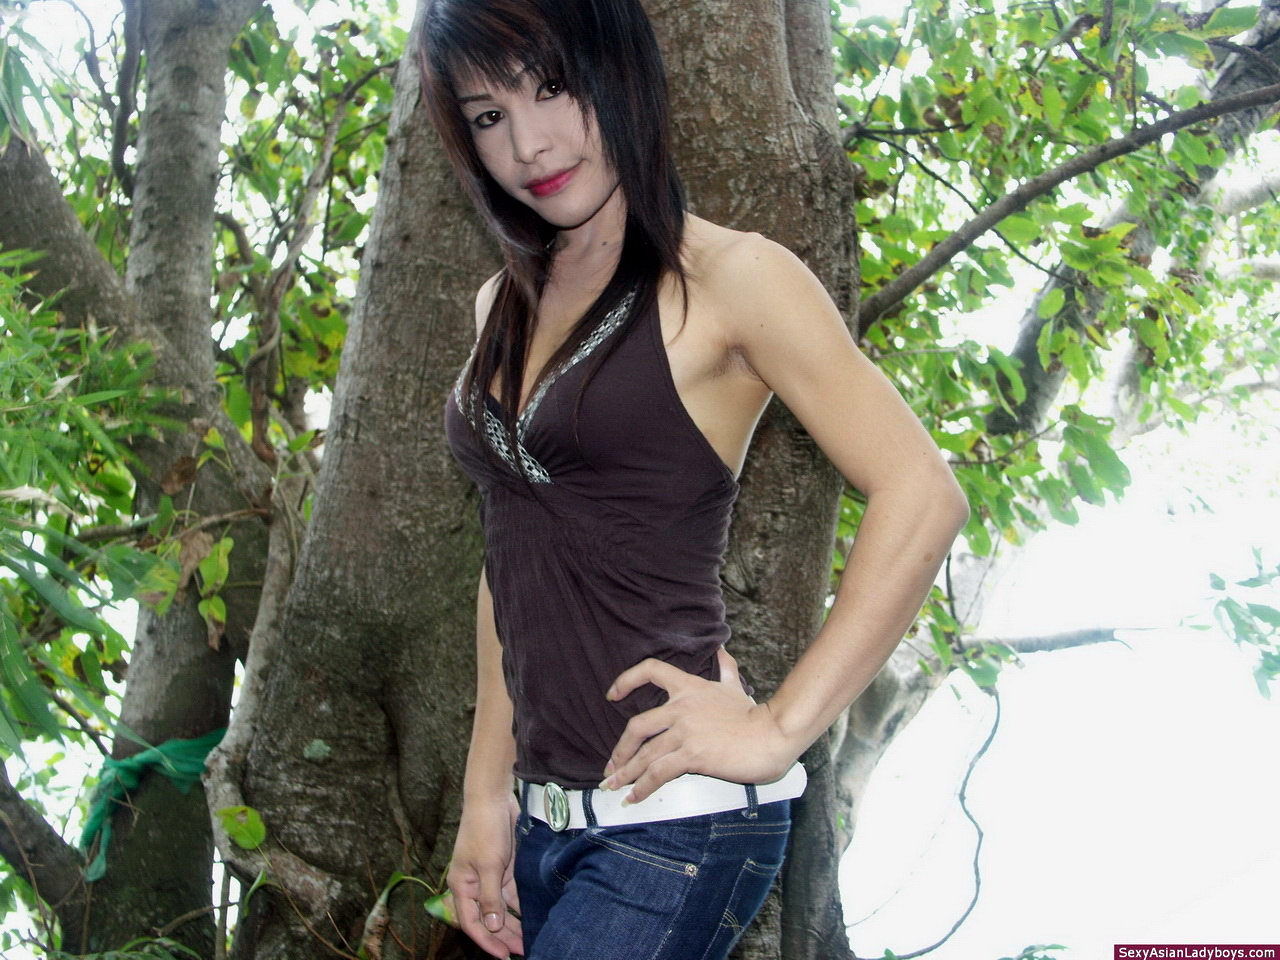 Very Arousing Asian Transexual Flashing Her Seductive Love Tools Outdoors